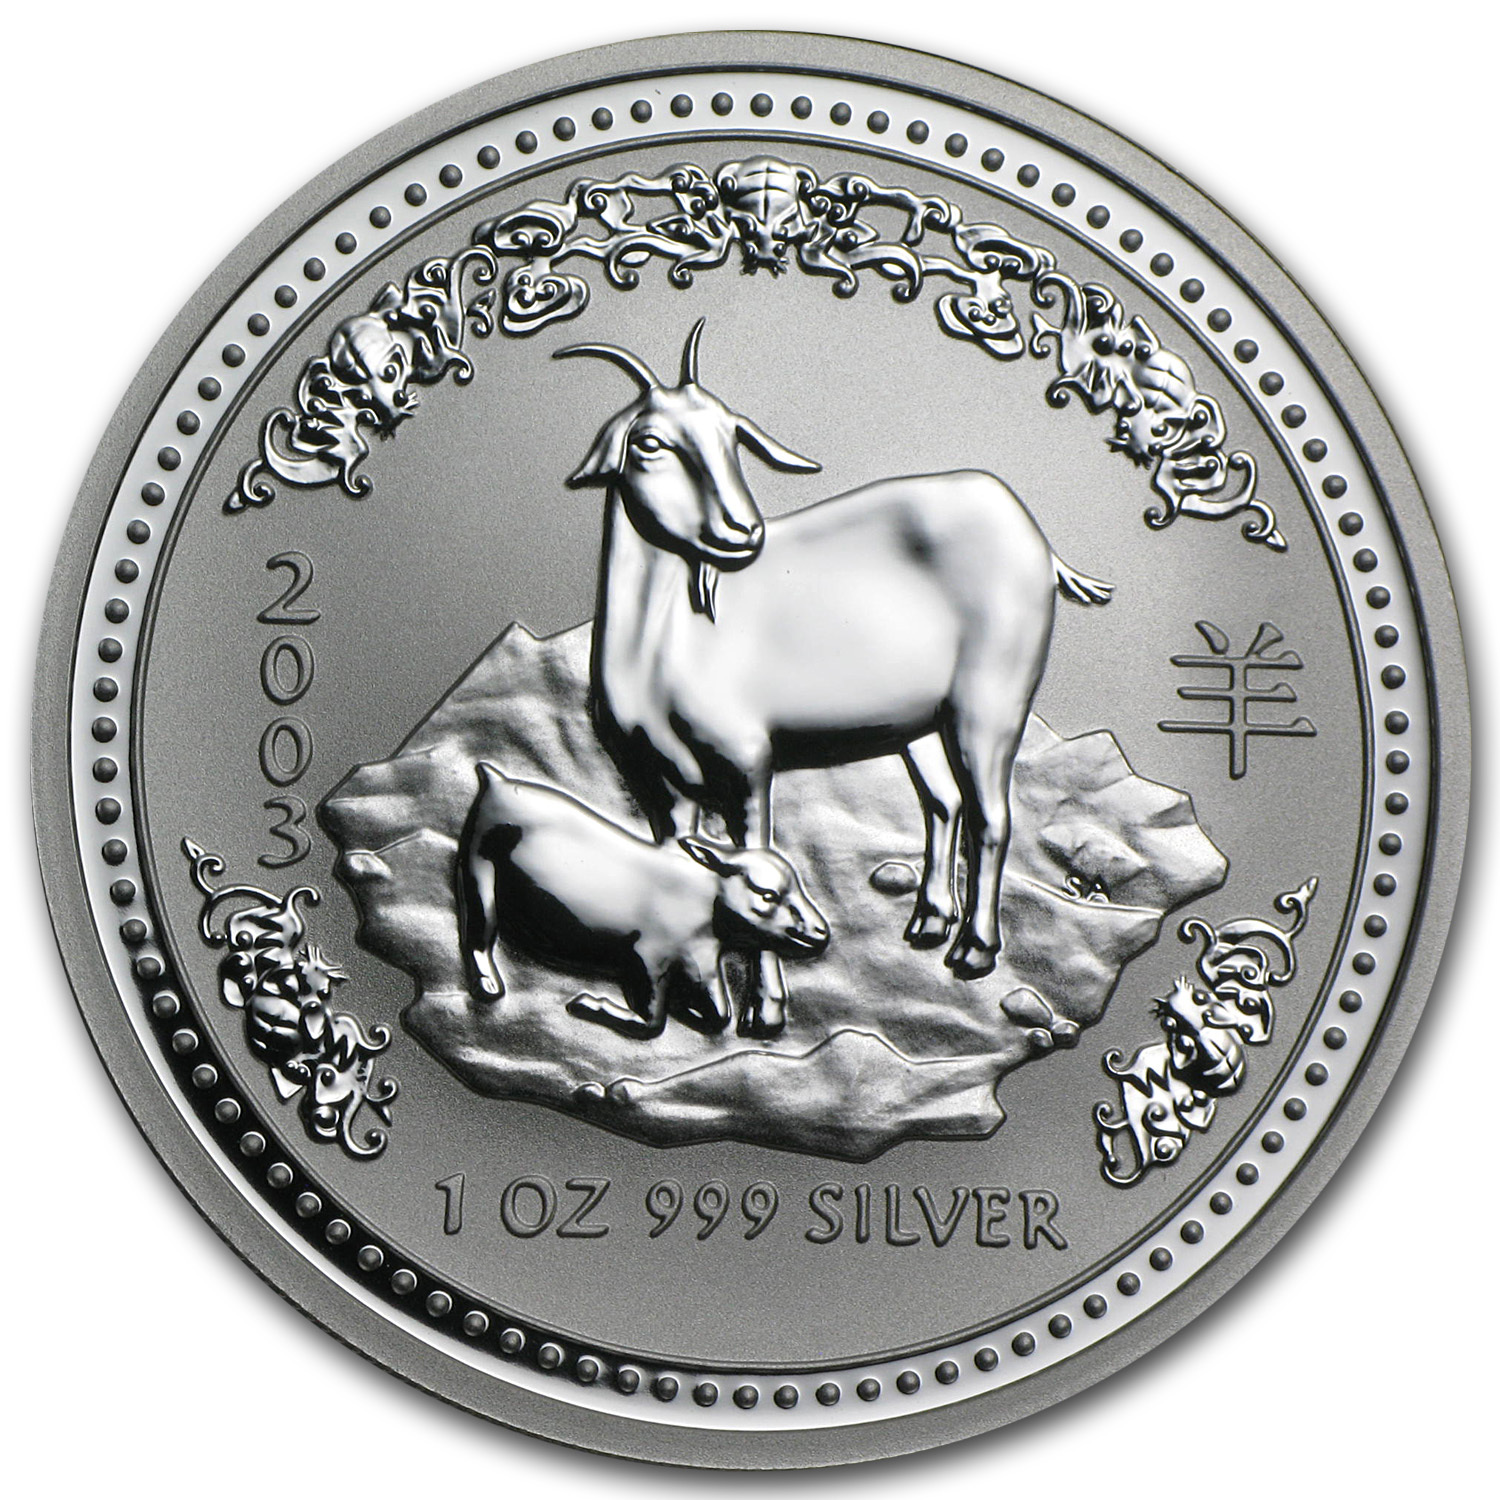 2003 Australia 1 oz Silver Year of the Goat BU